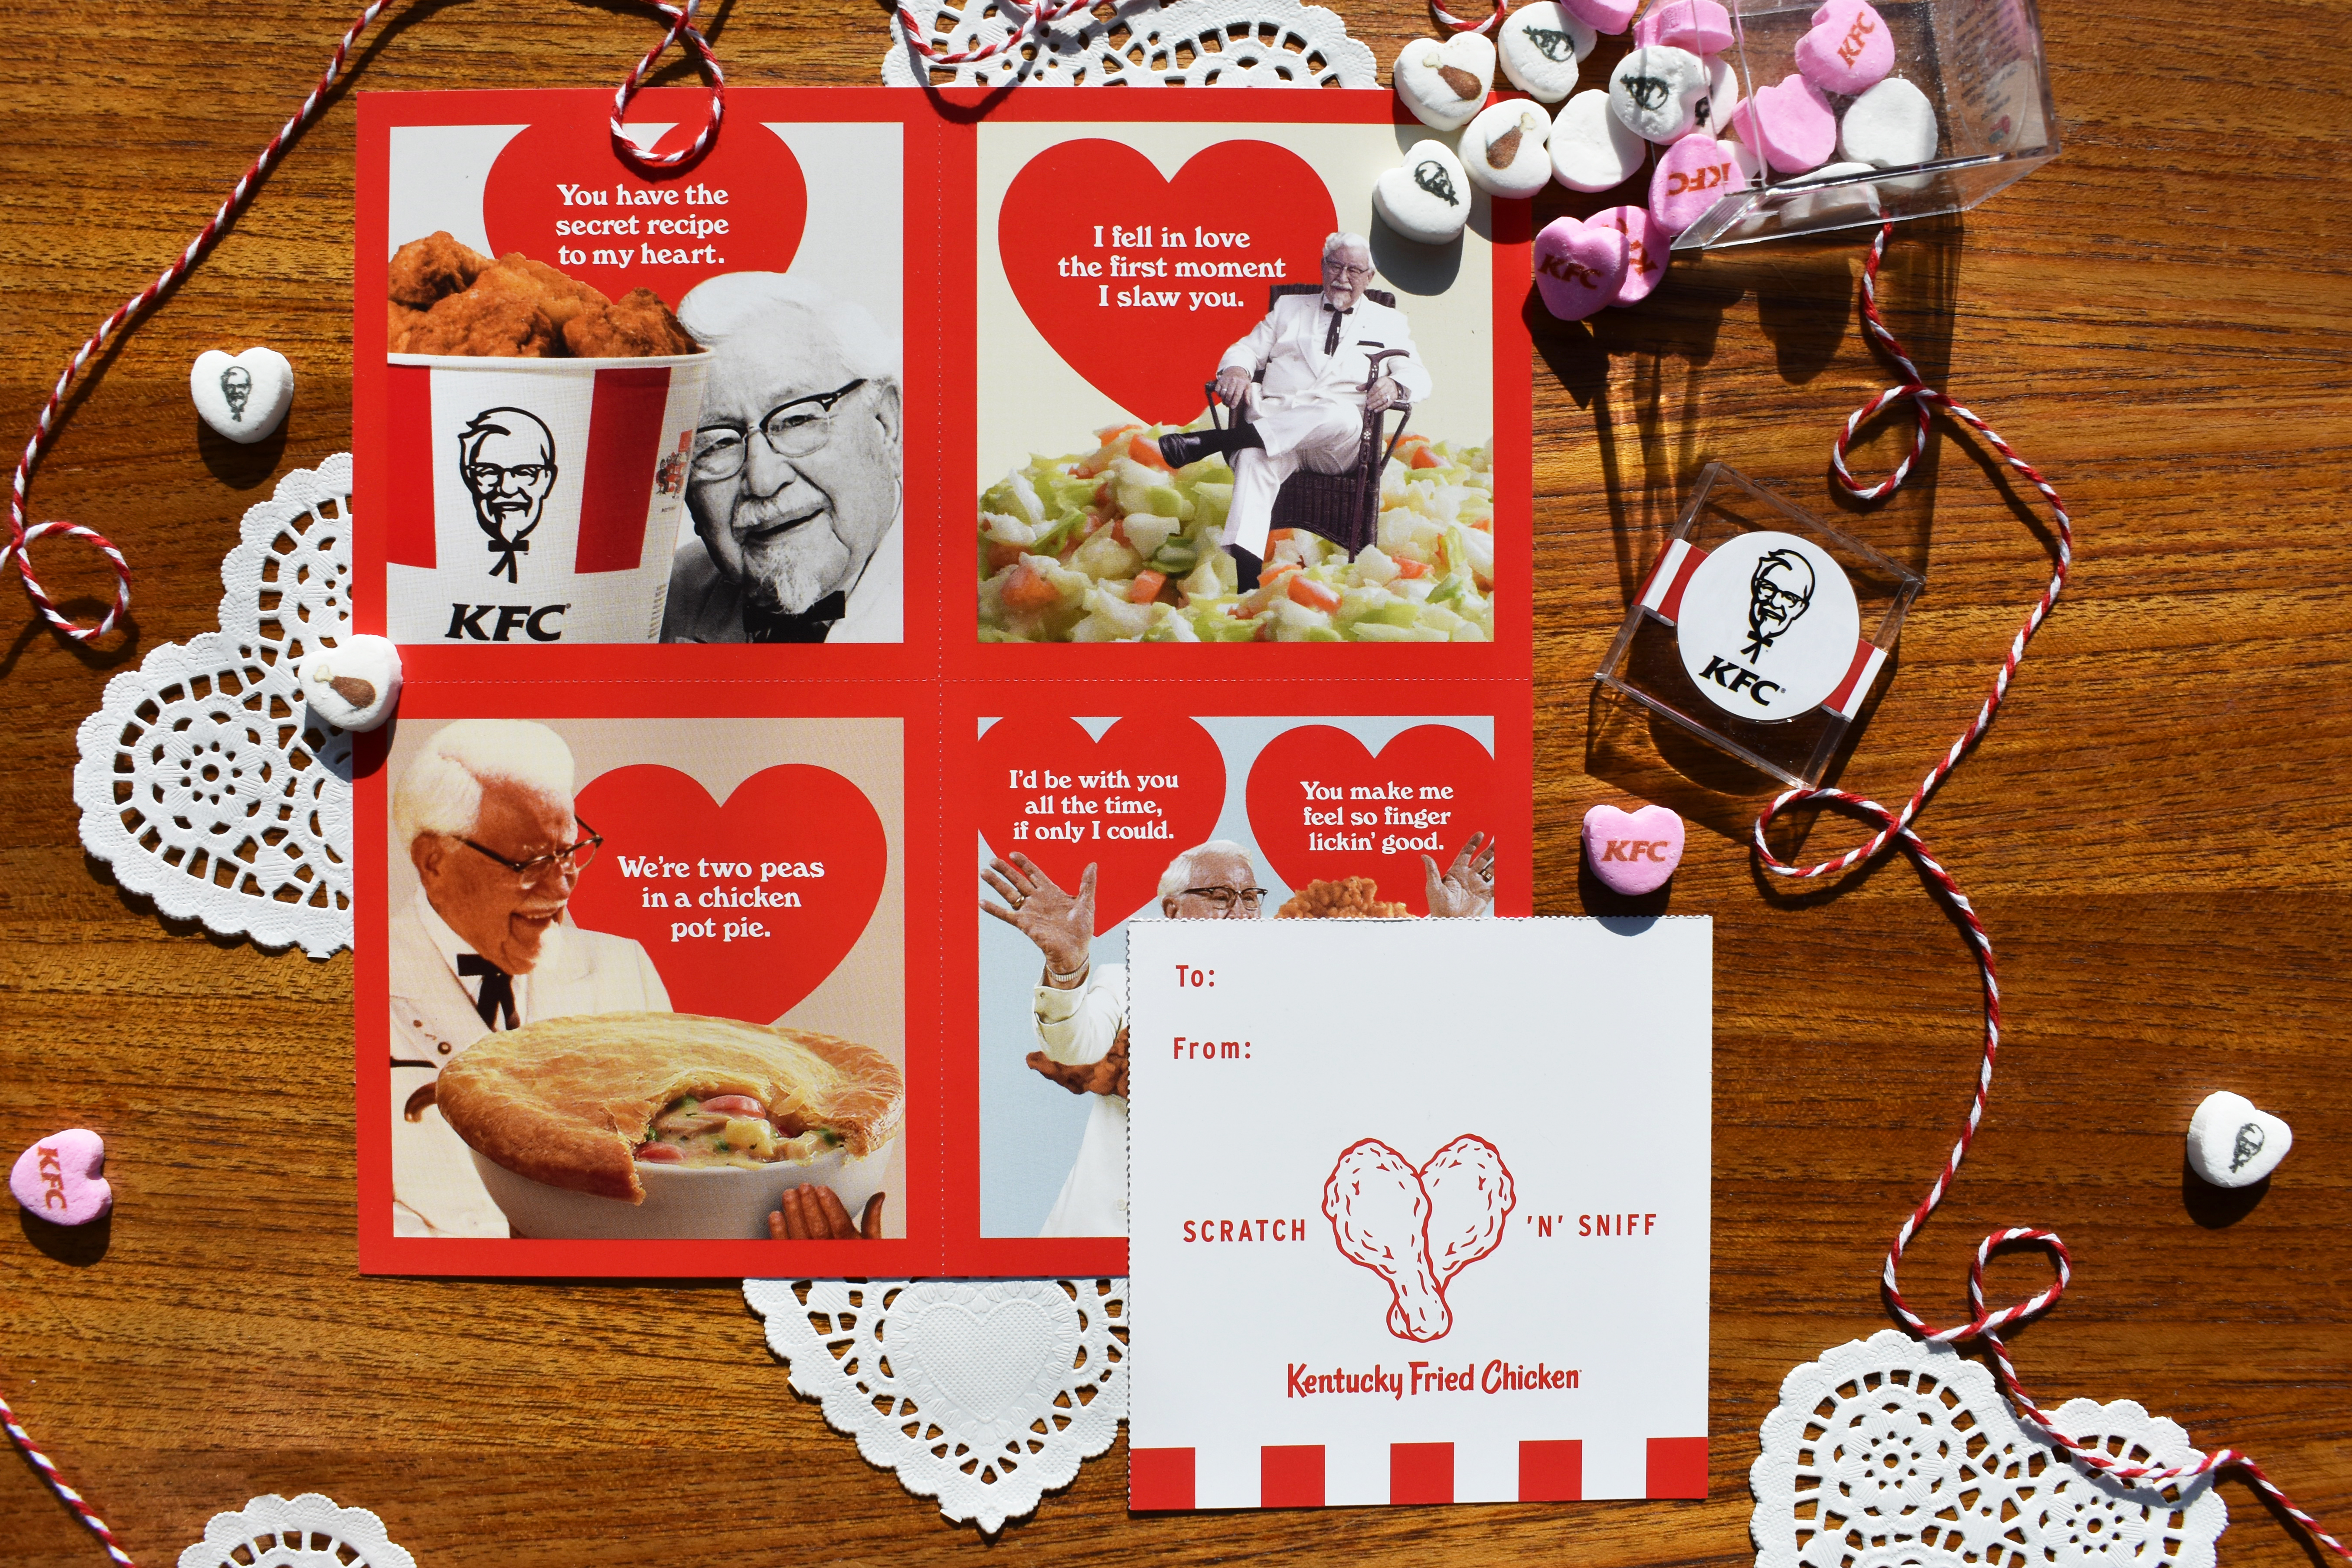 KFC: Scratch 'N' Sniff Valentines Smell Like Fried Chicken | Fortune